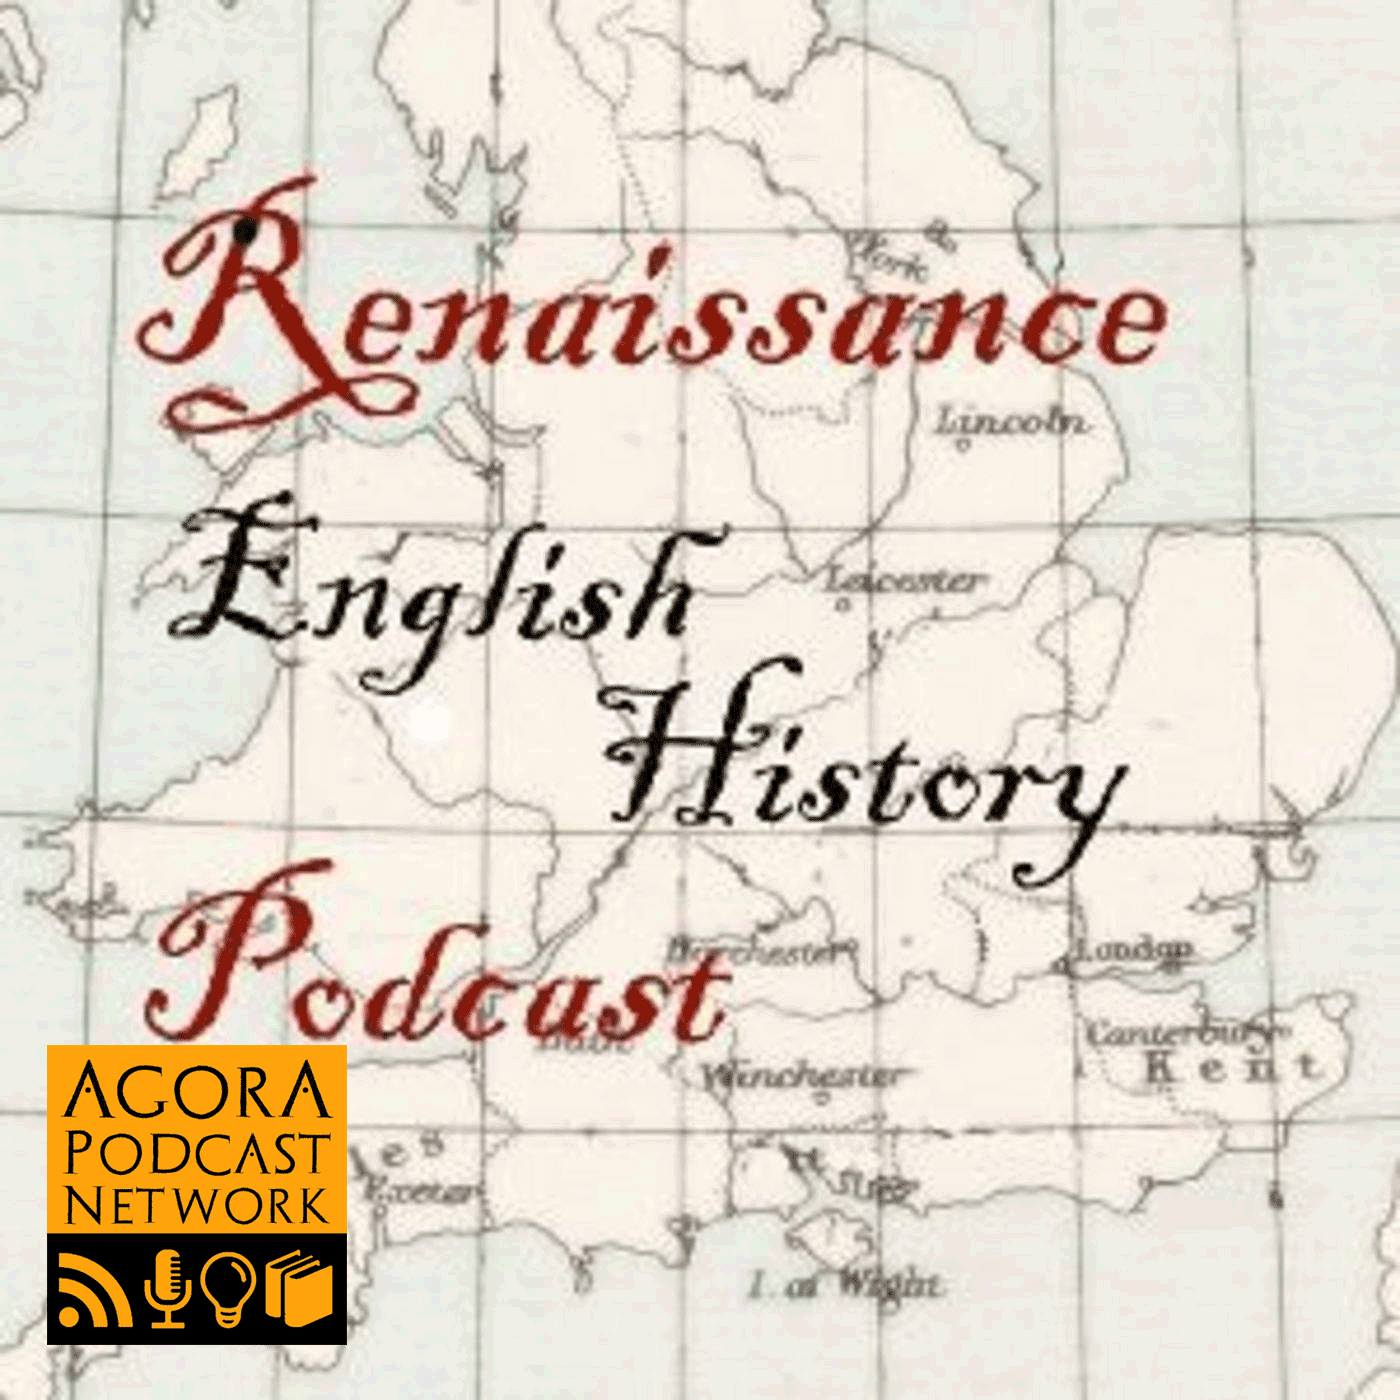 Episode 036.5: MiniCast - Three Tudor Poets